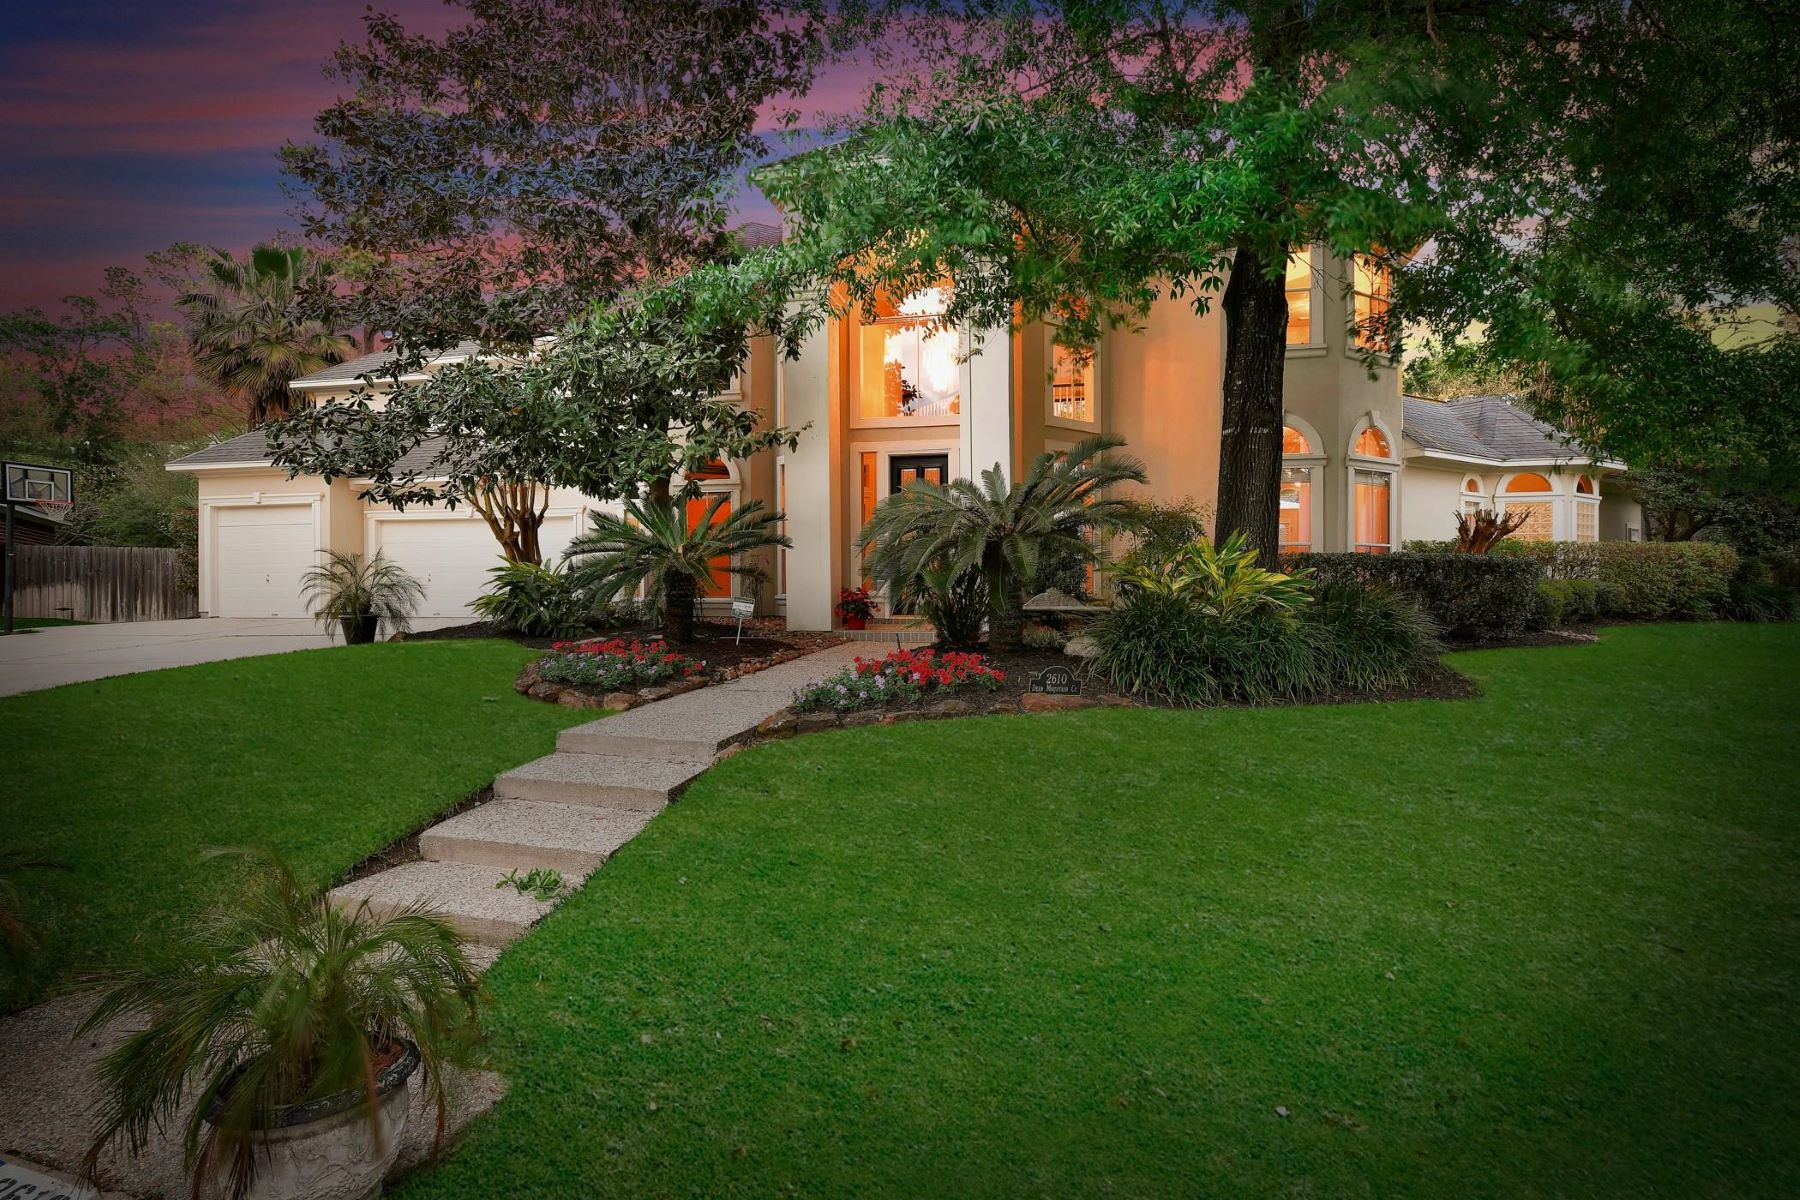 Single Family Homes for Sale at 2610 Deer Mountain Court 2610 Deer Mountain Ct Kingwood, Texas 77345 United States